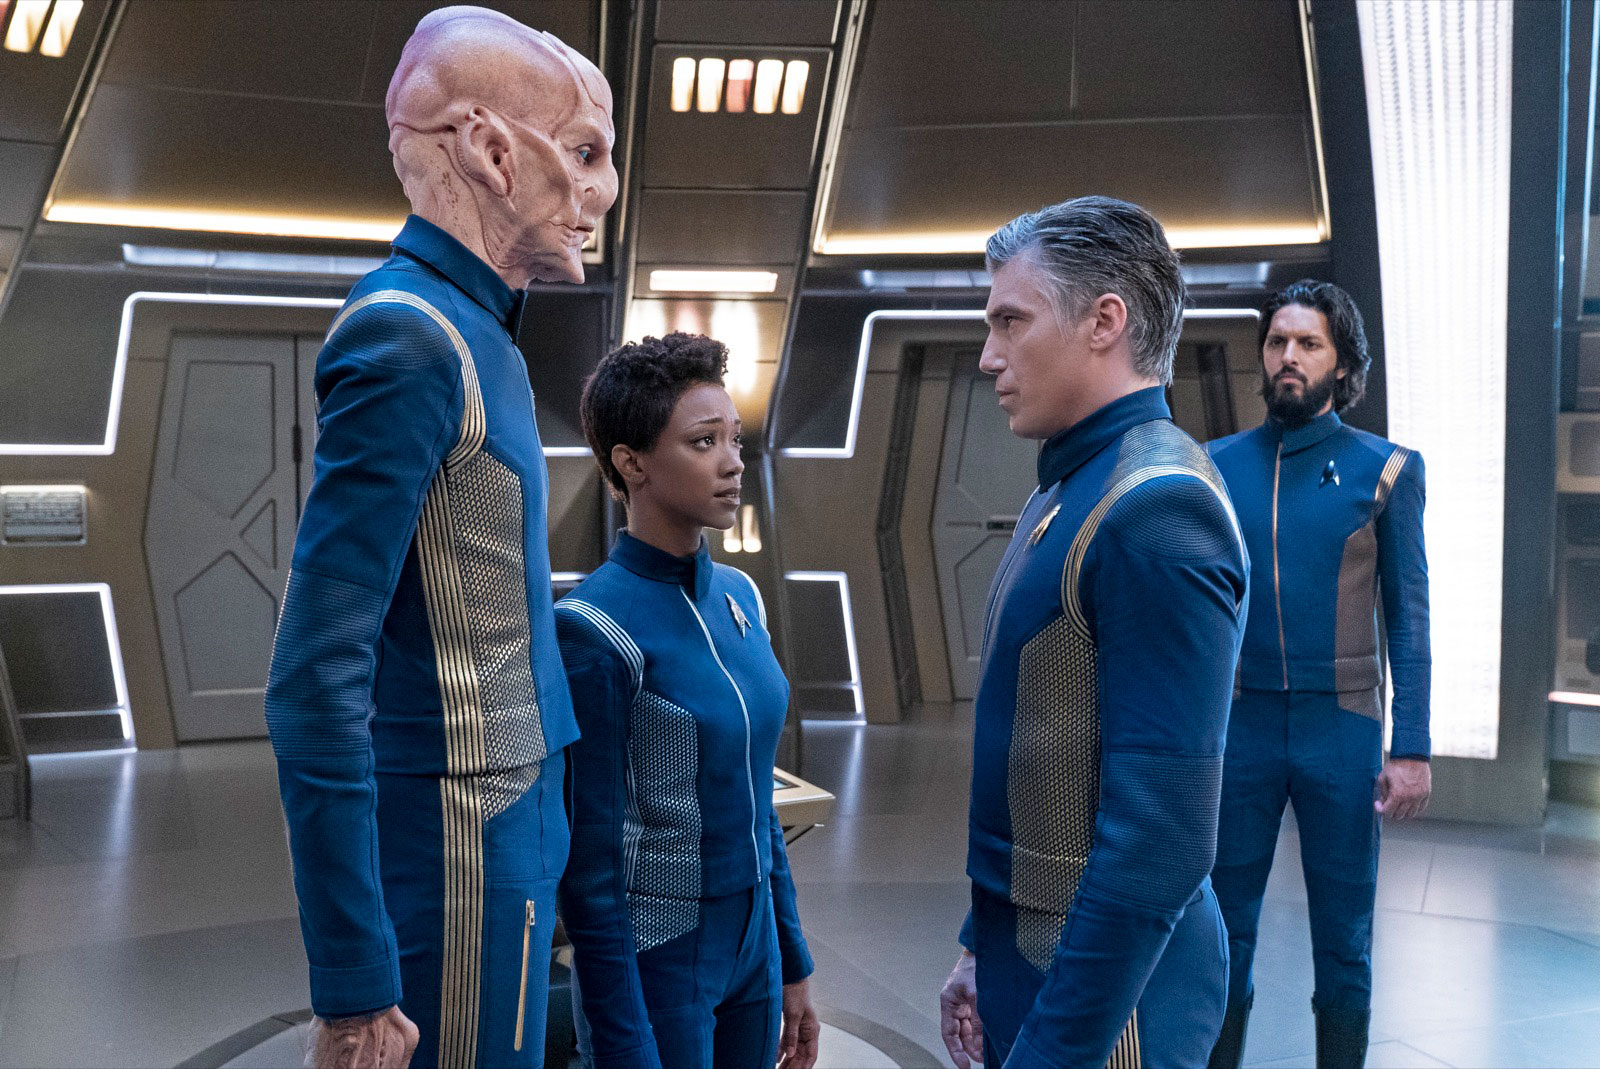 Doug Jones as Saru, Sonequa Martin-Green as Michael Burnham, Anson Mount as Christopher Pike and Shazad Latif as Ash Tyler